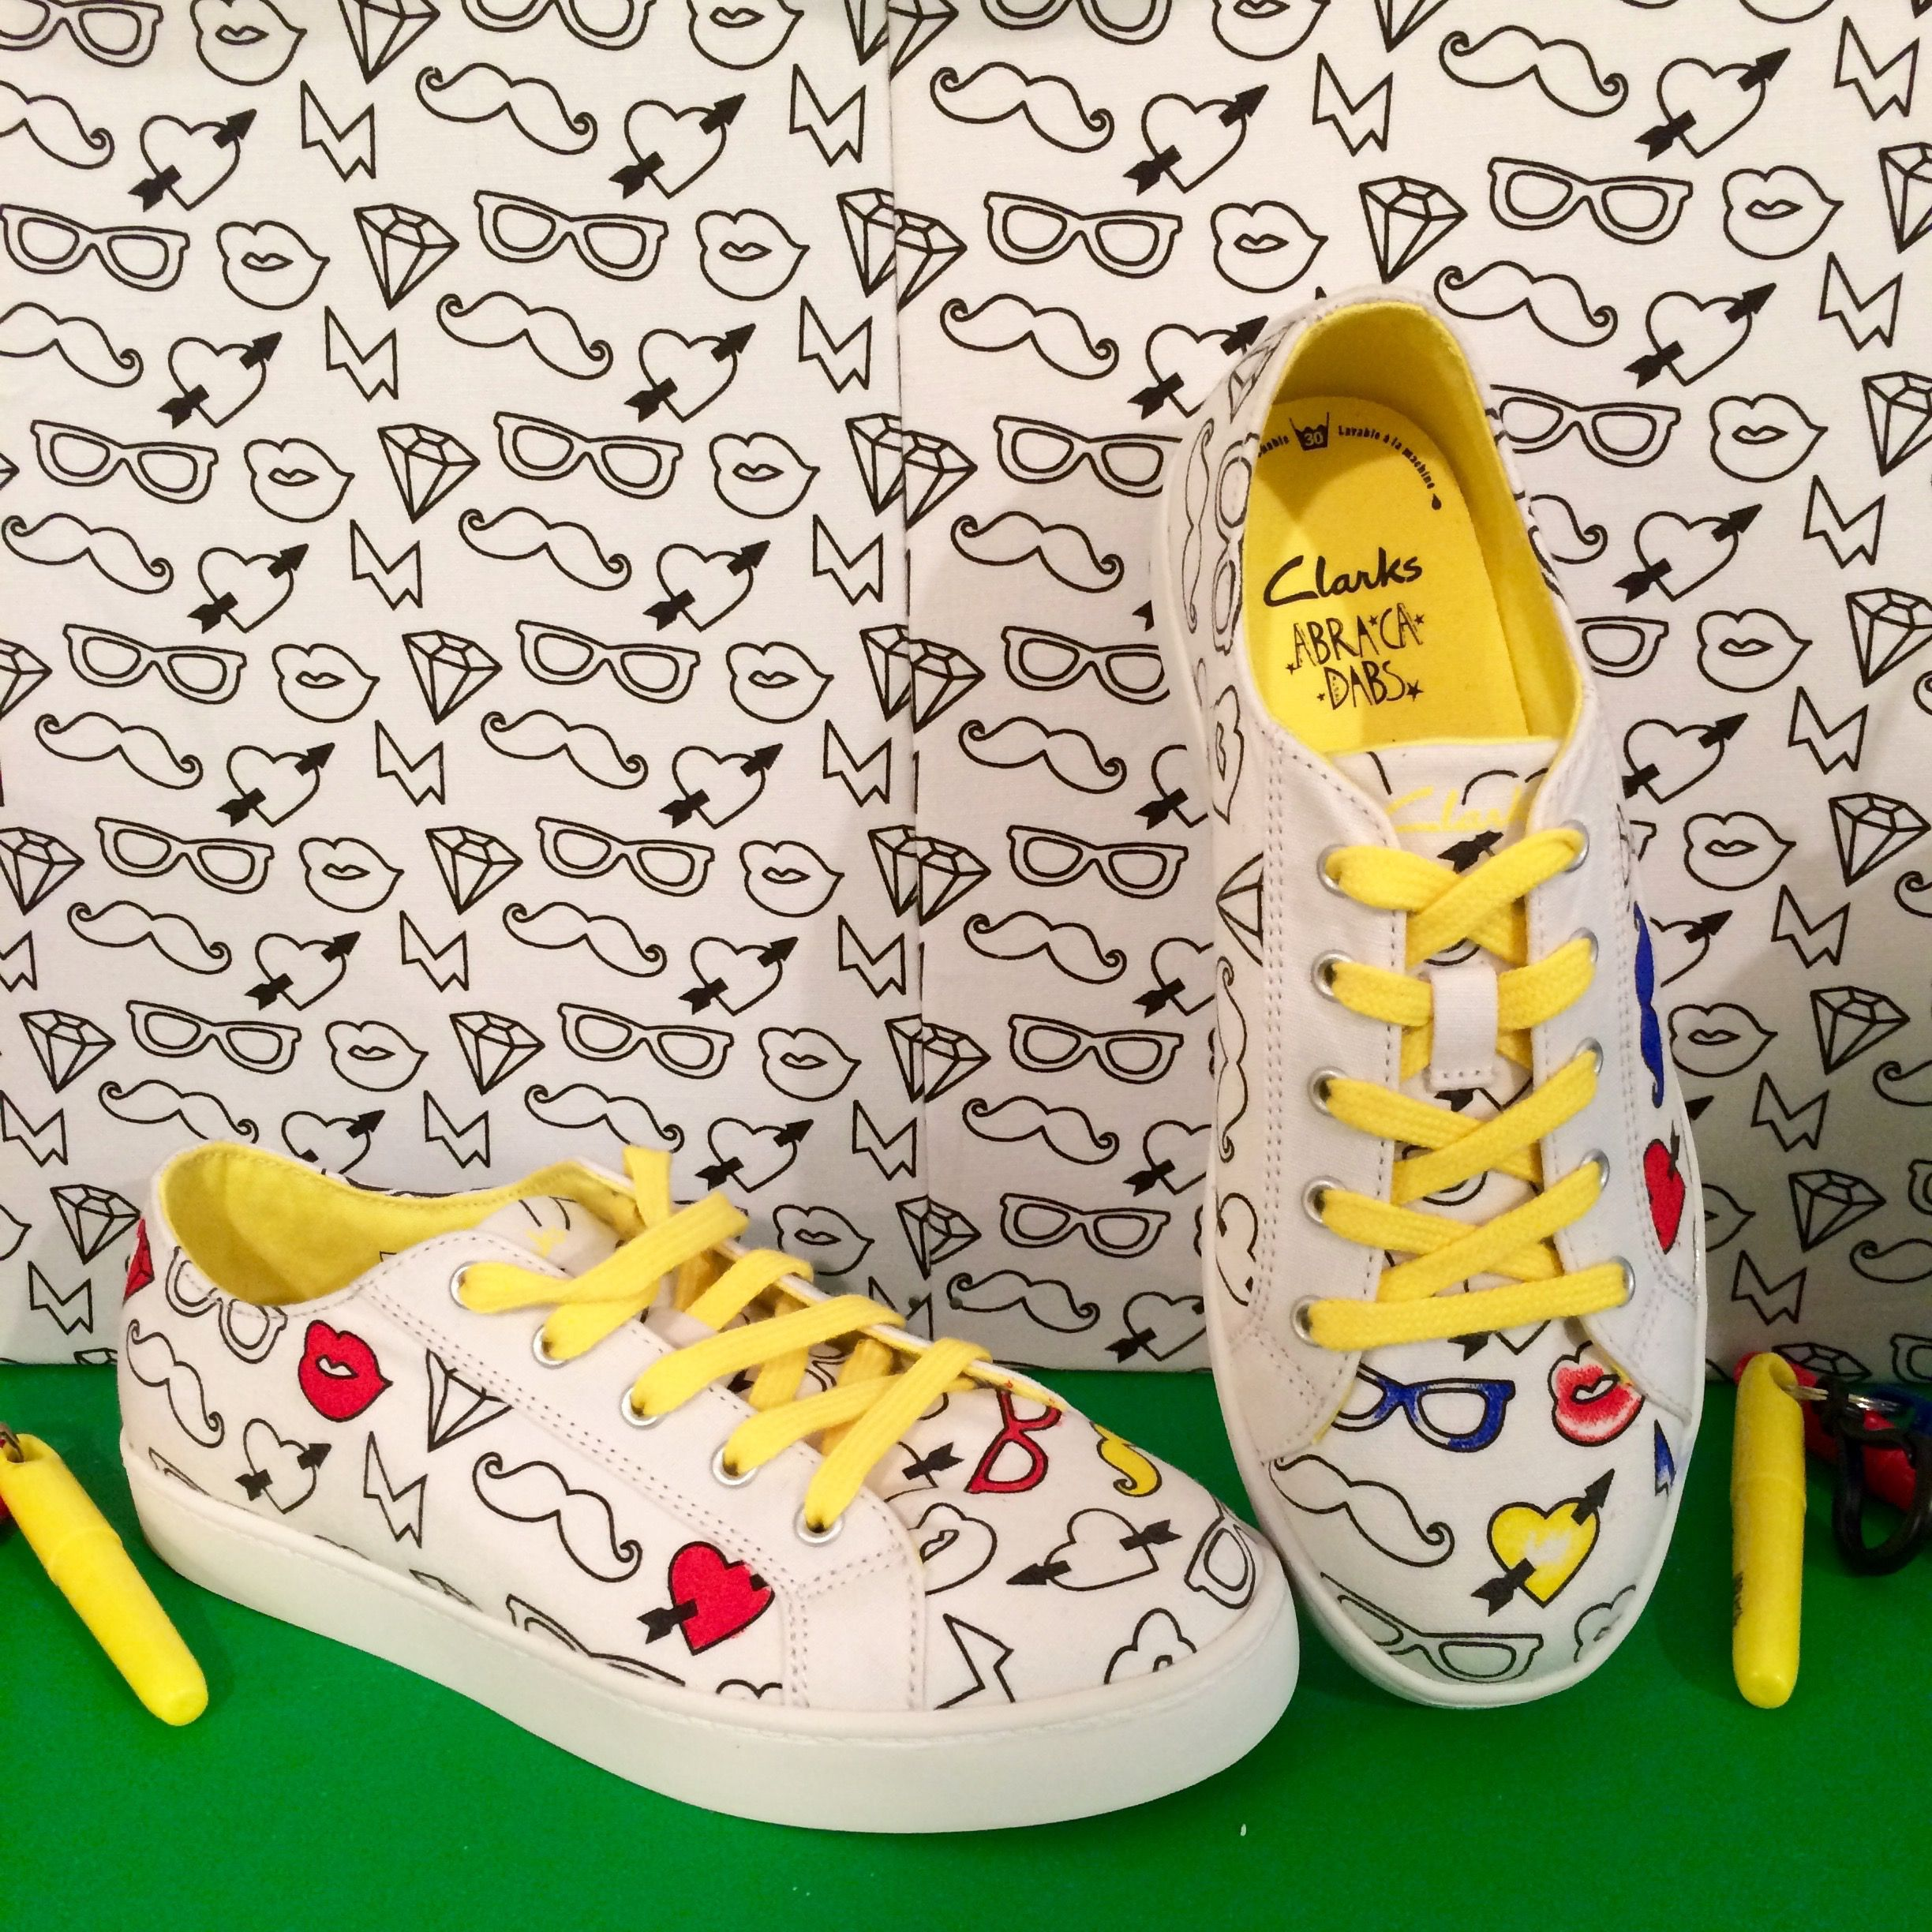 e2deb5239 Colour me in shoes at Clarks spring 2016 kids footwear preview